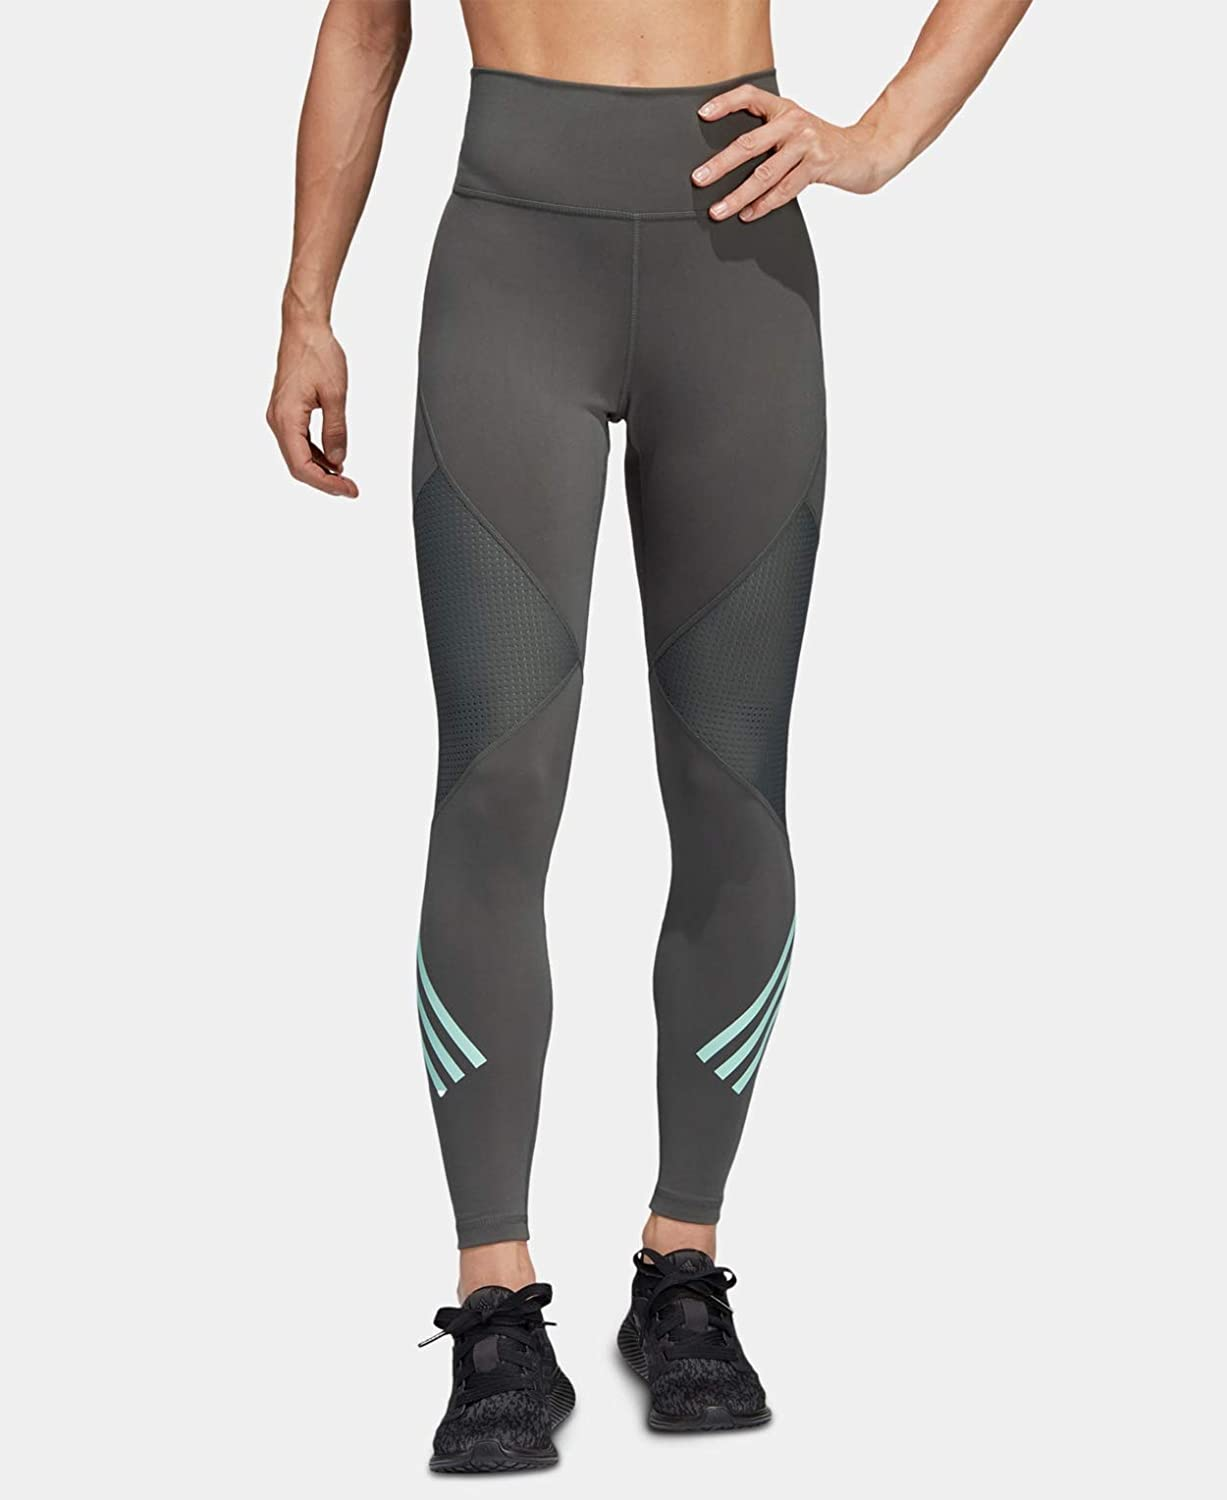 adidas Women's Believe This High Rise Save money Tight supreme 3-Stripes 8 Length 7